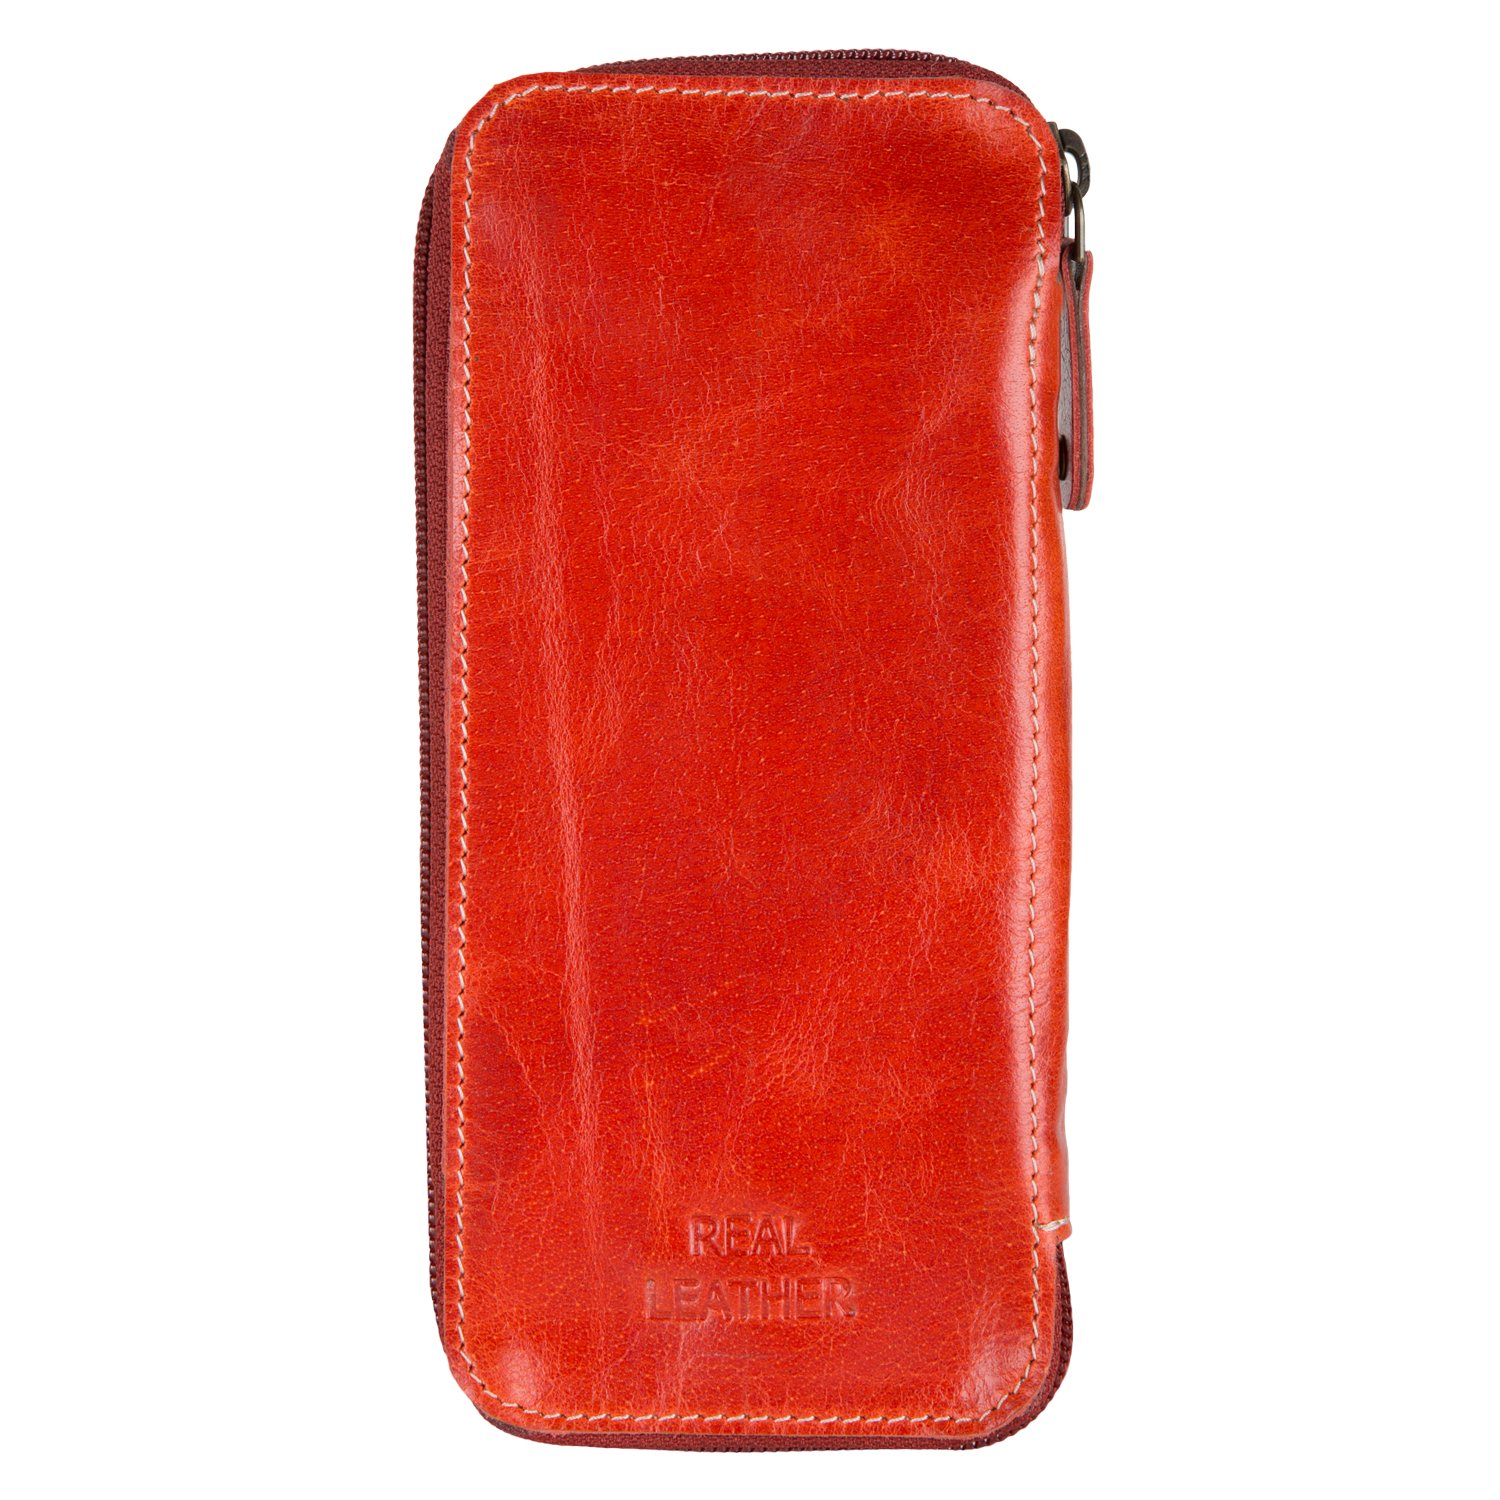 Enew Leather Zippered Pen Pencil Pouch Case Gift for Students Professionals Artists Large Compartment to Carry Art Supplies Charcoal Brush Pencil Markers Unisex Vintage Case (Red)